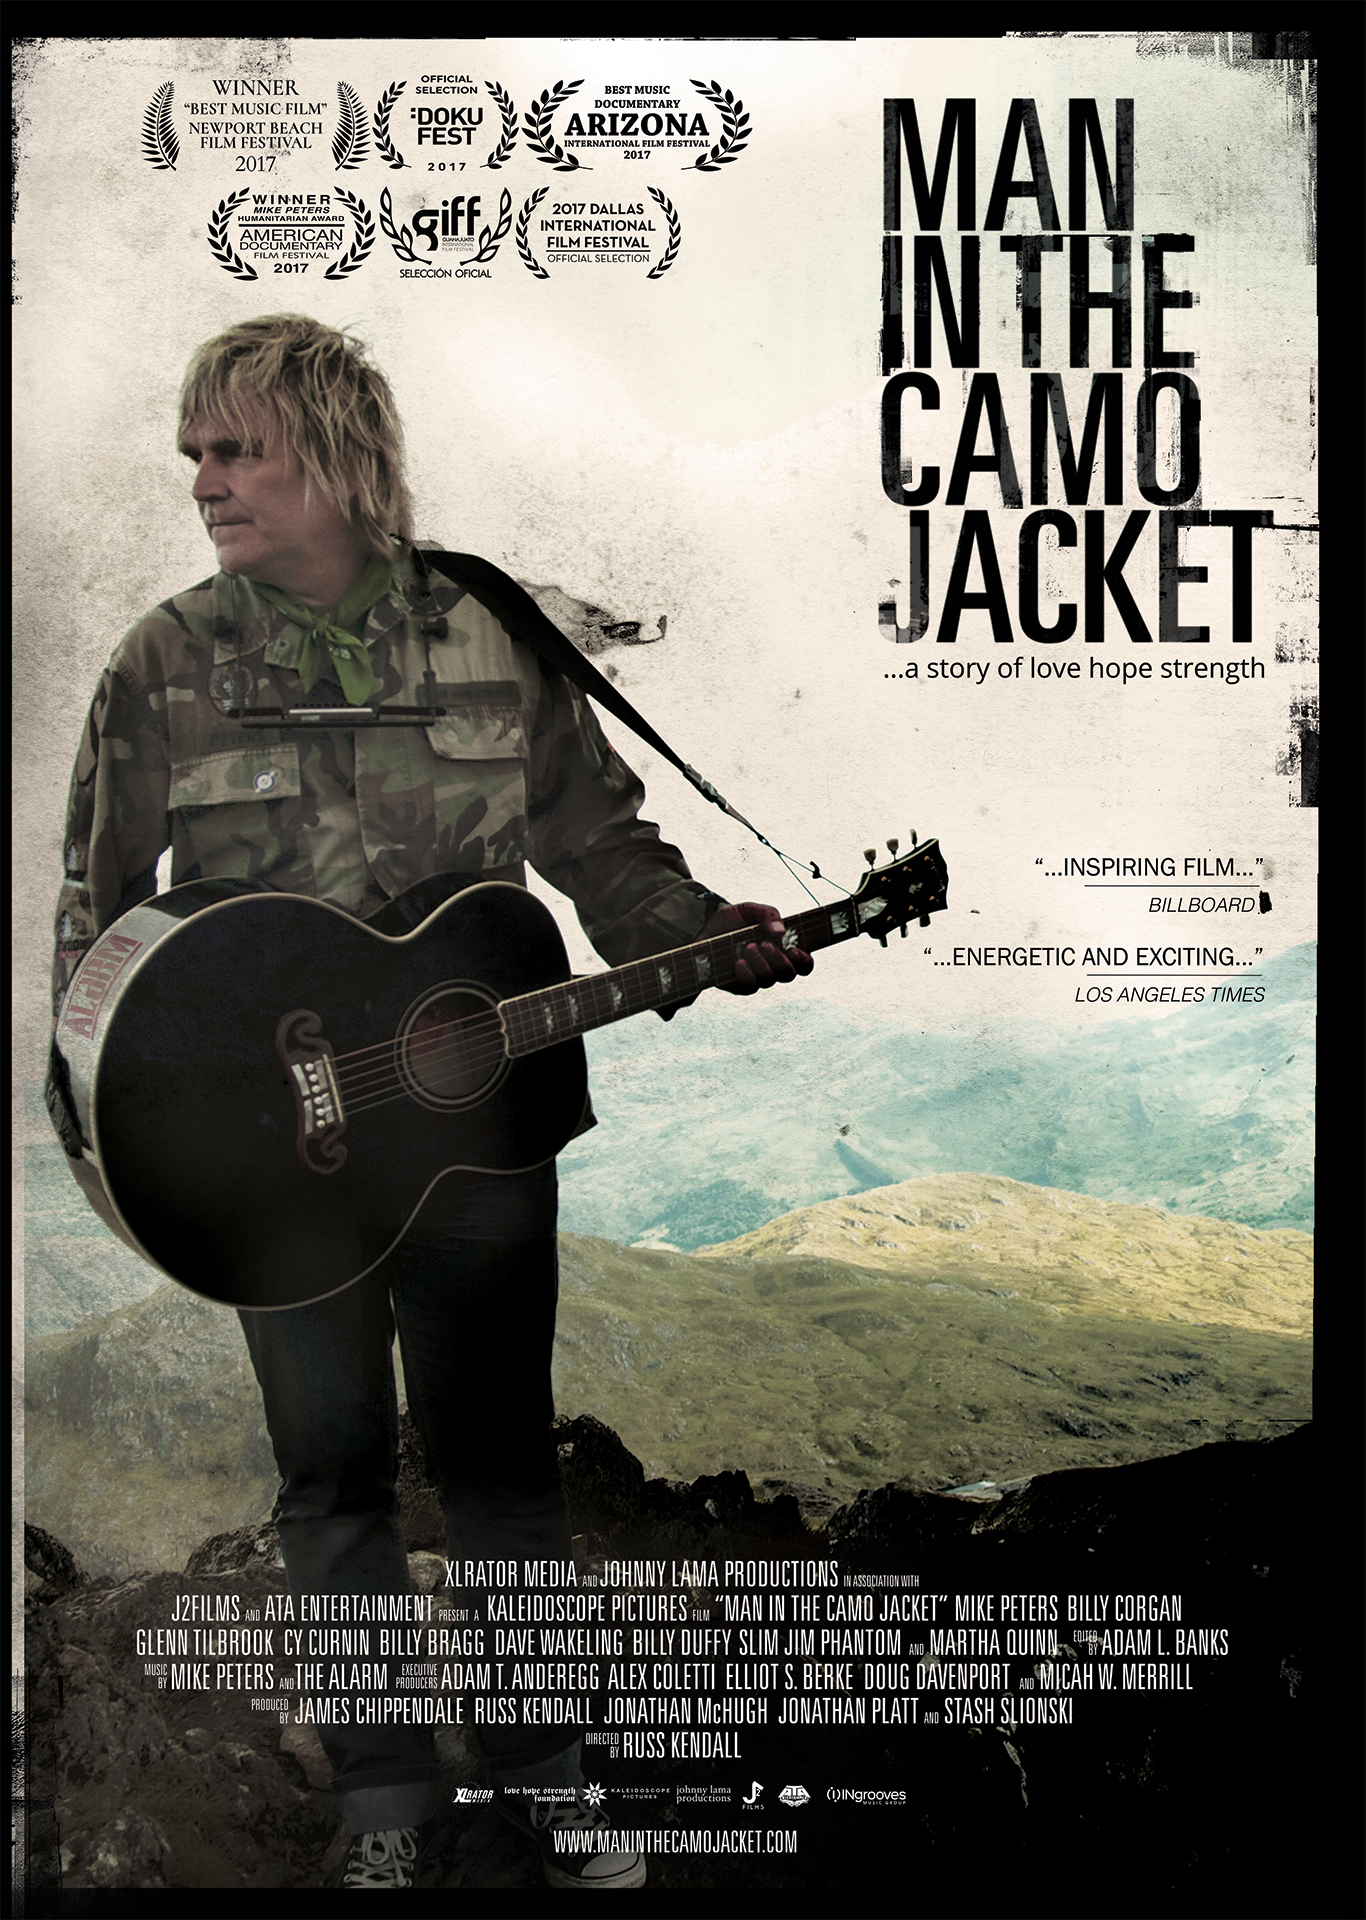 Man In The Camo Jacket - Official Poster